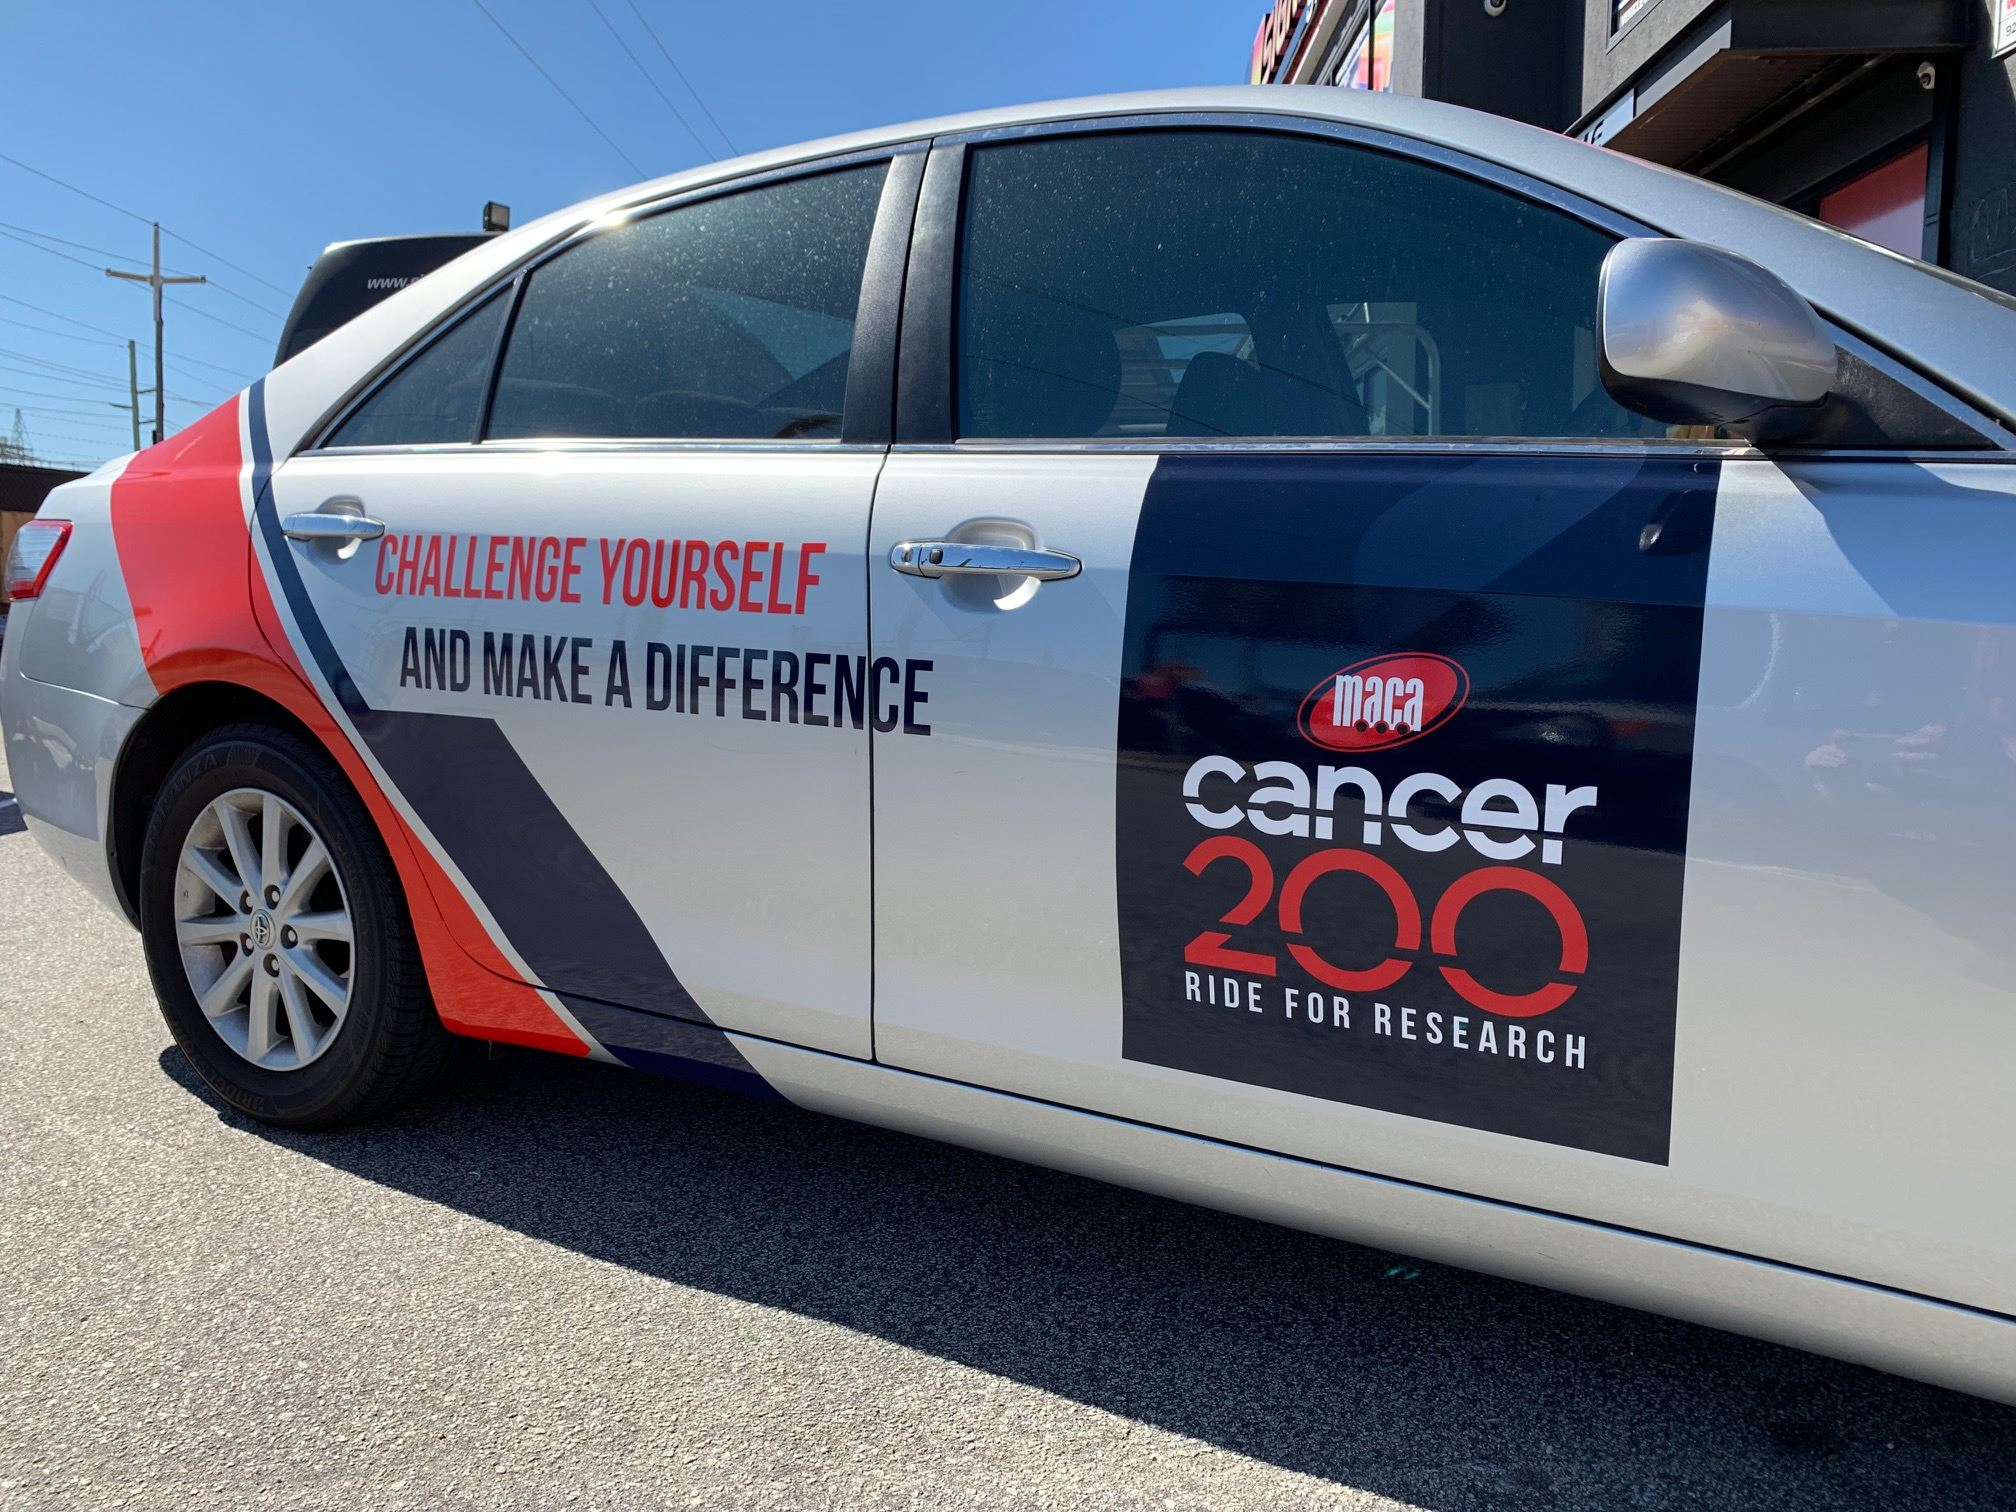 Vehicle graphics for MACA Cancer 200